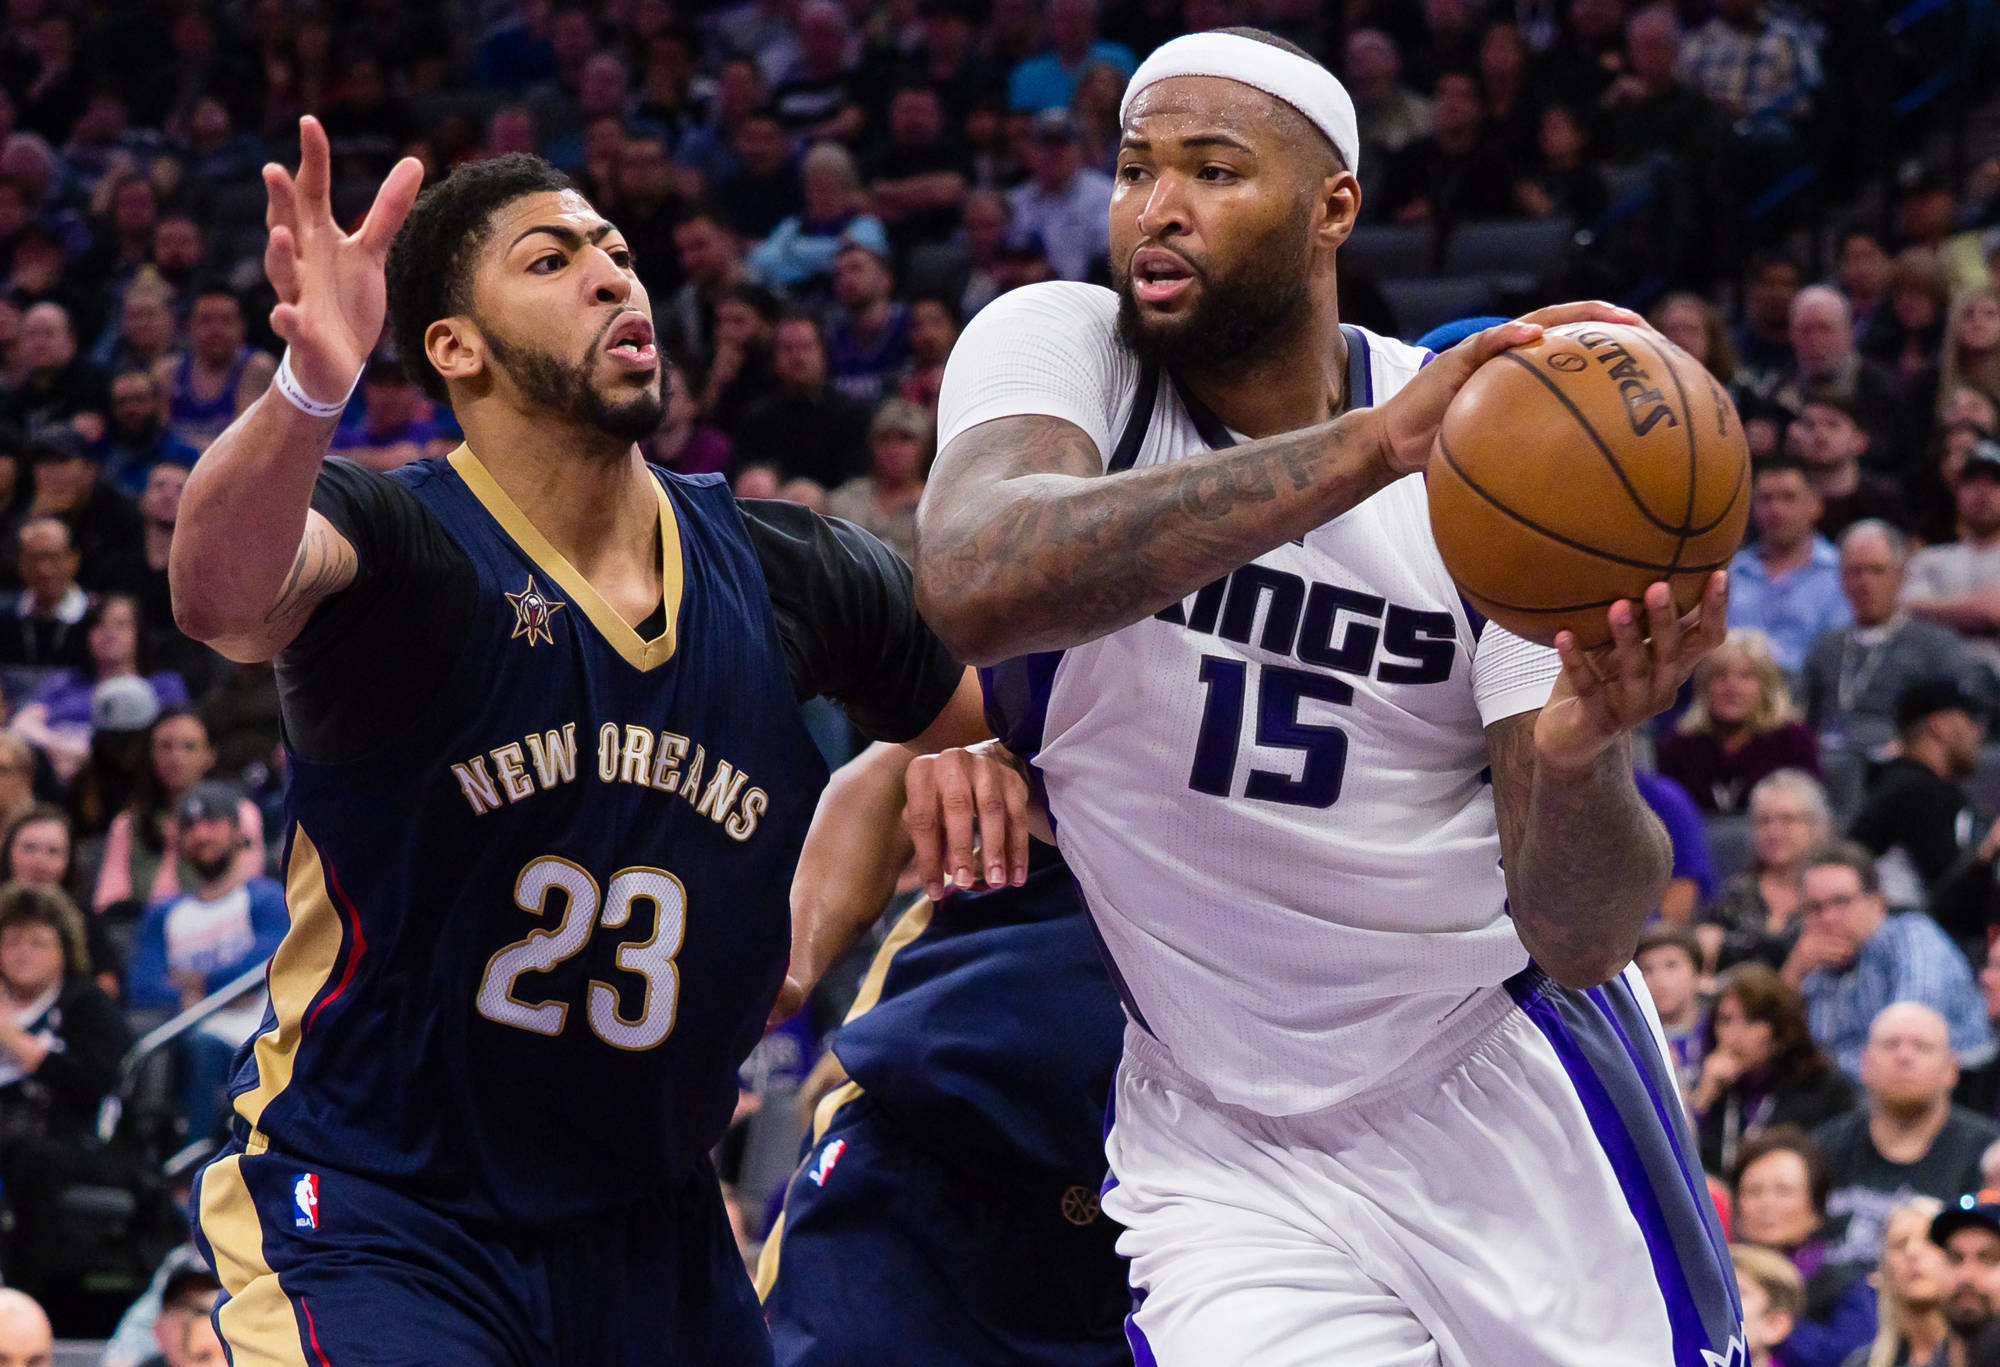 BREAKING: Boogie Cousins to New Orleans